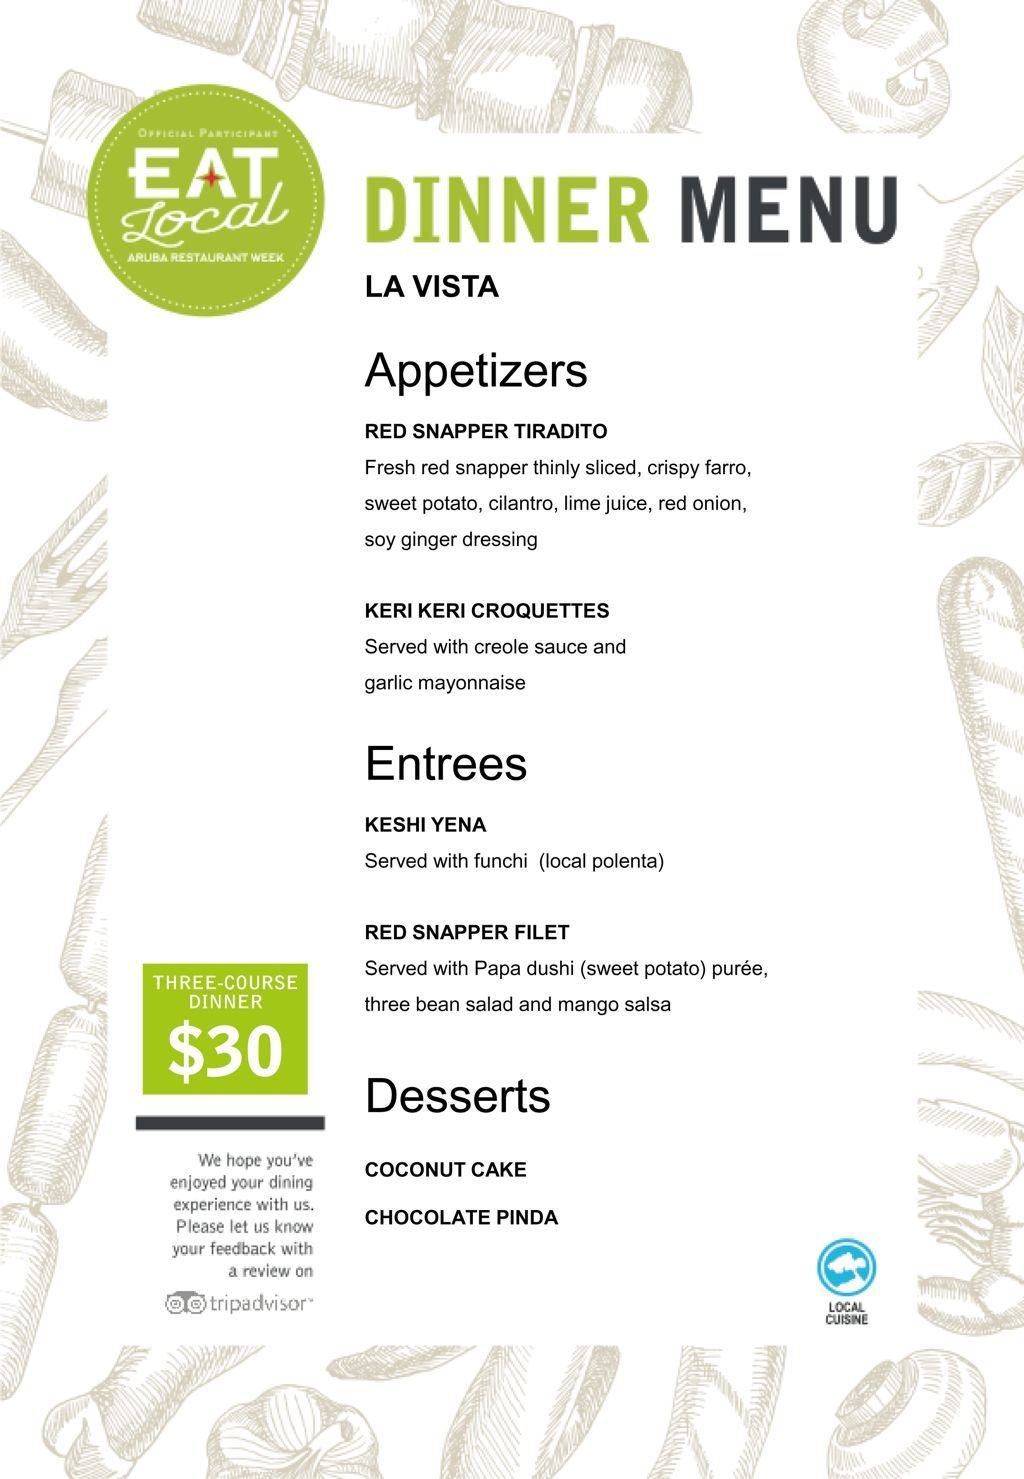 La Vista - Eat Local 2017